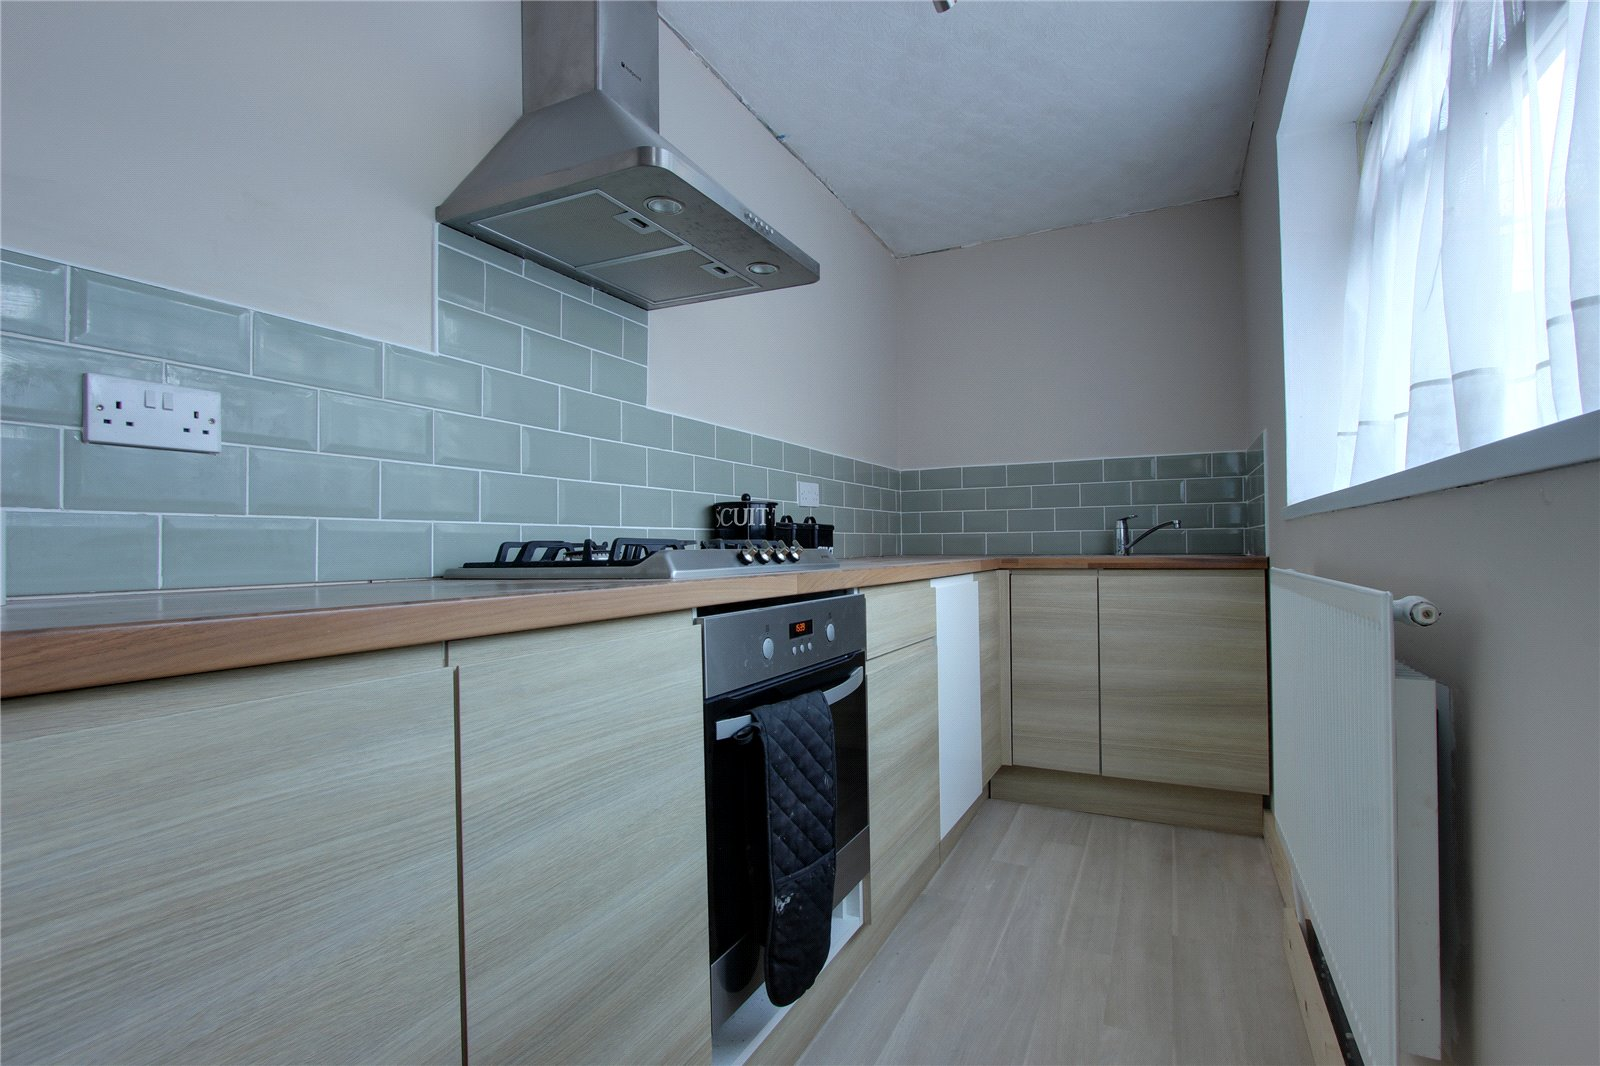 2 bedroom property for sale in Bell Street, Middlesbrough, TS5 - £65,000